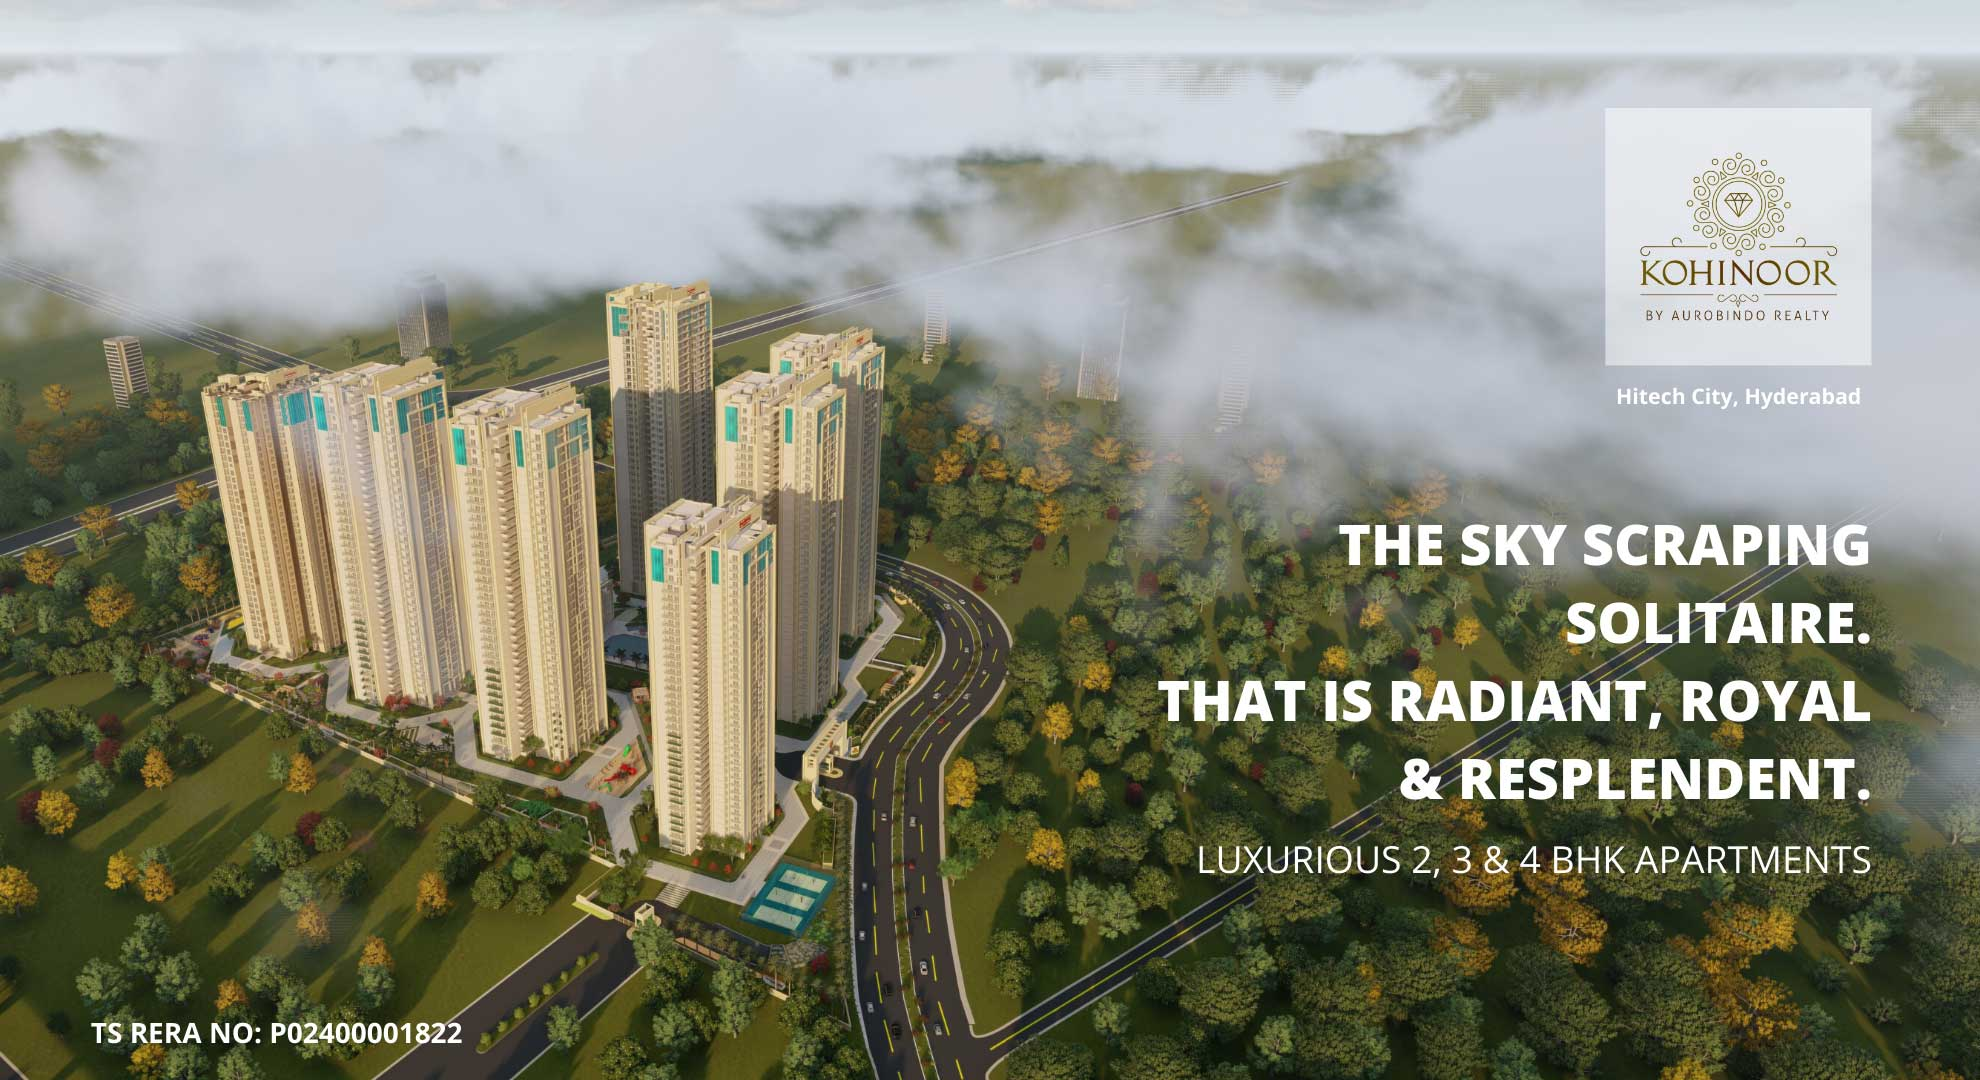 Kohinoor By Aurobindo Realty - Flats in Hitech City